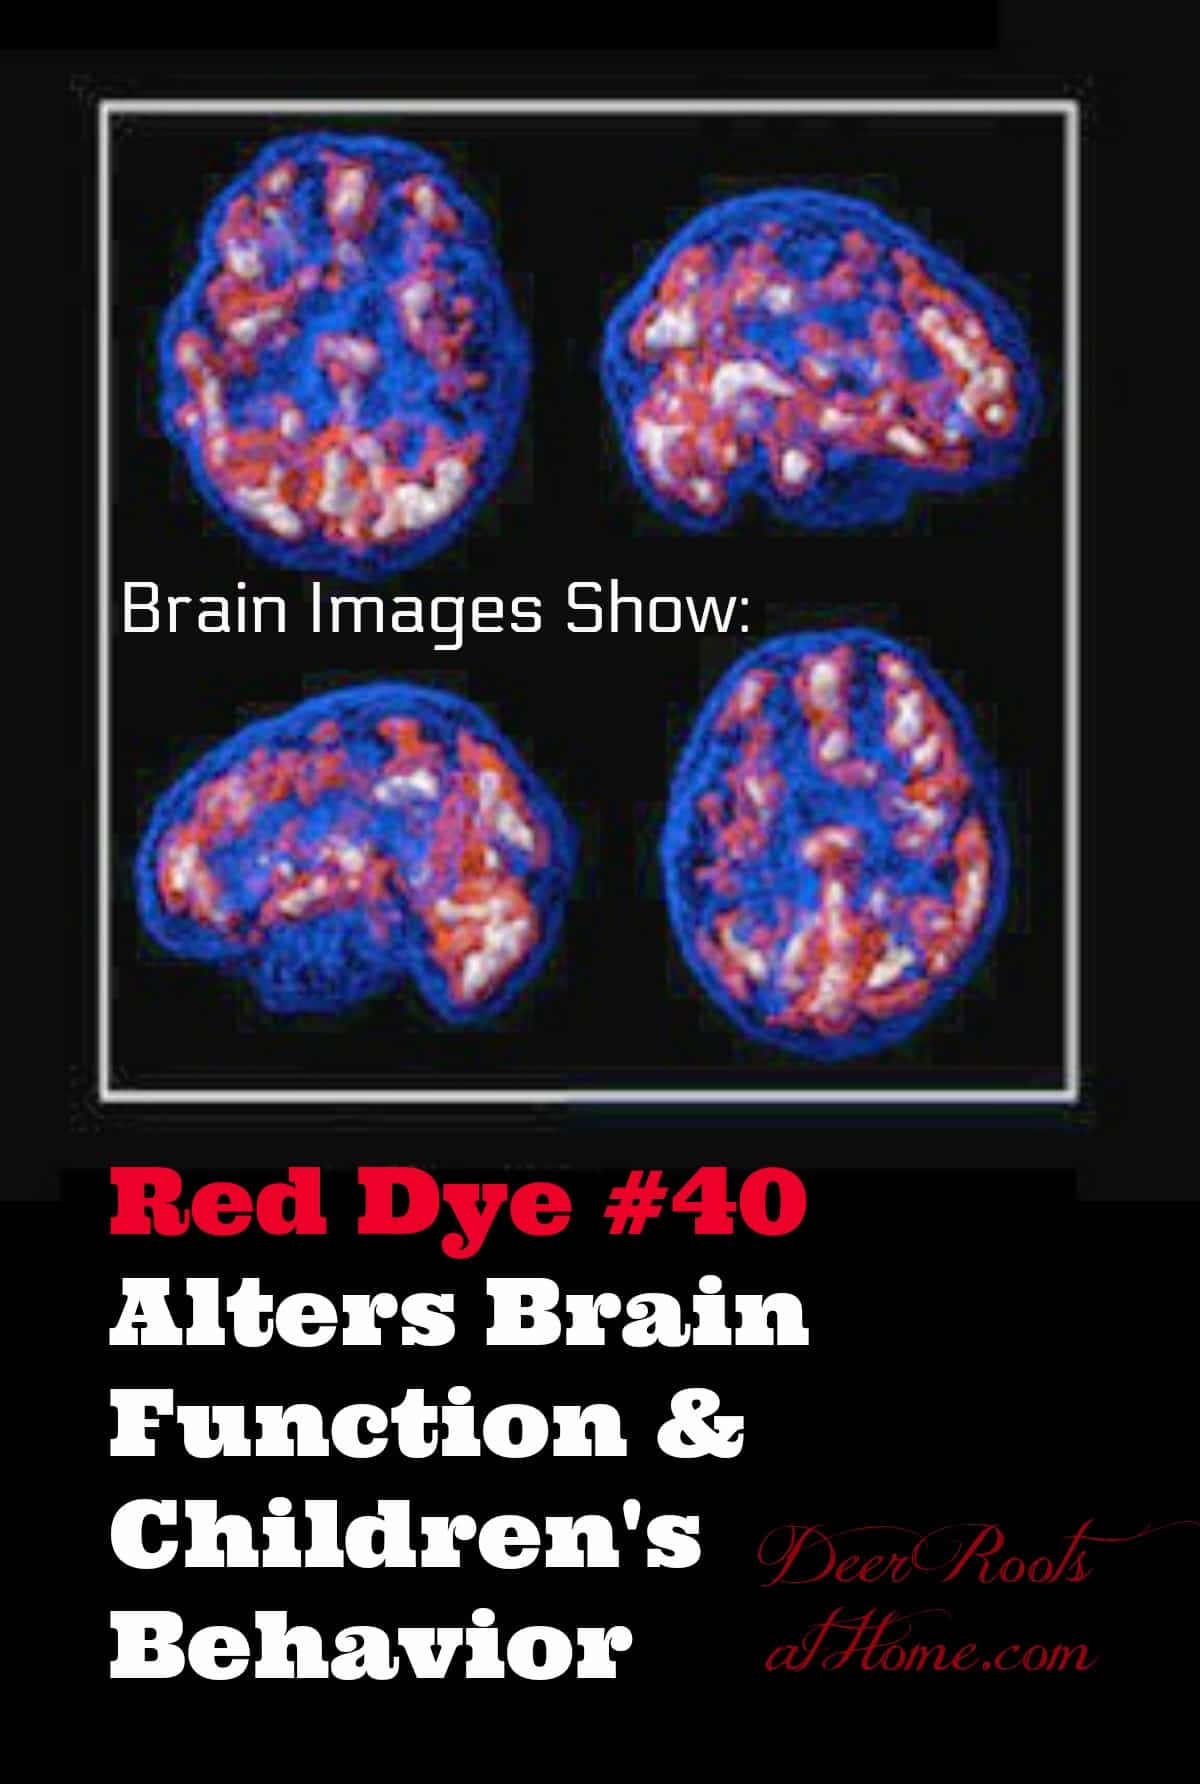 Red Dye #40 Can Make Non-ADD Kids Hyperactive & Alter Brain Function. Brain images showing effects of food dyes on brain function.